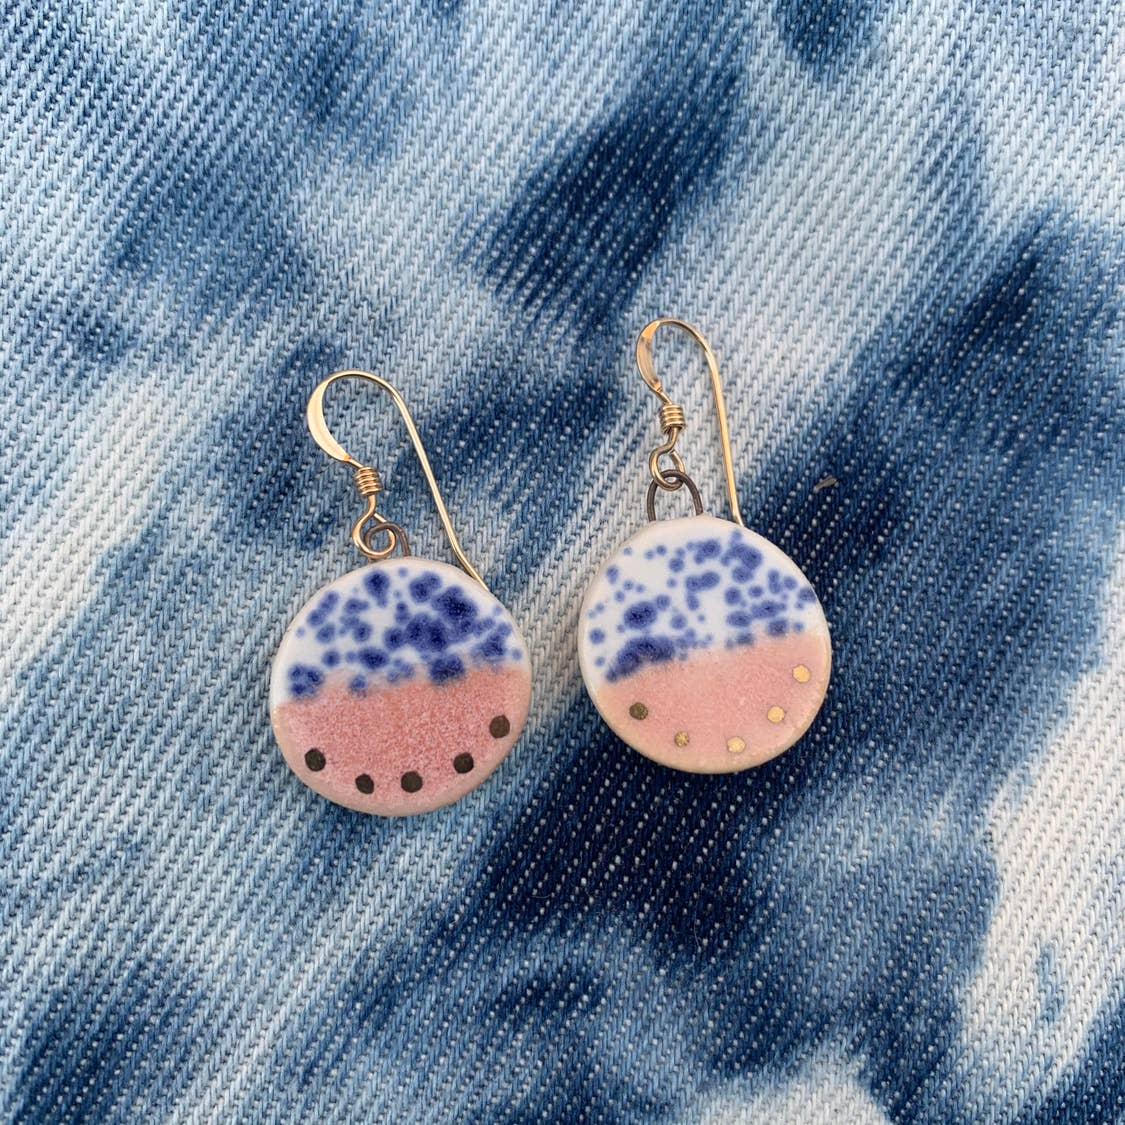 Round Drop Earrings Gold-Rhubarb/Blue Speckle